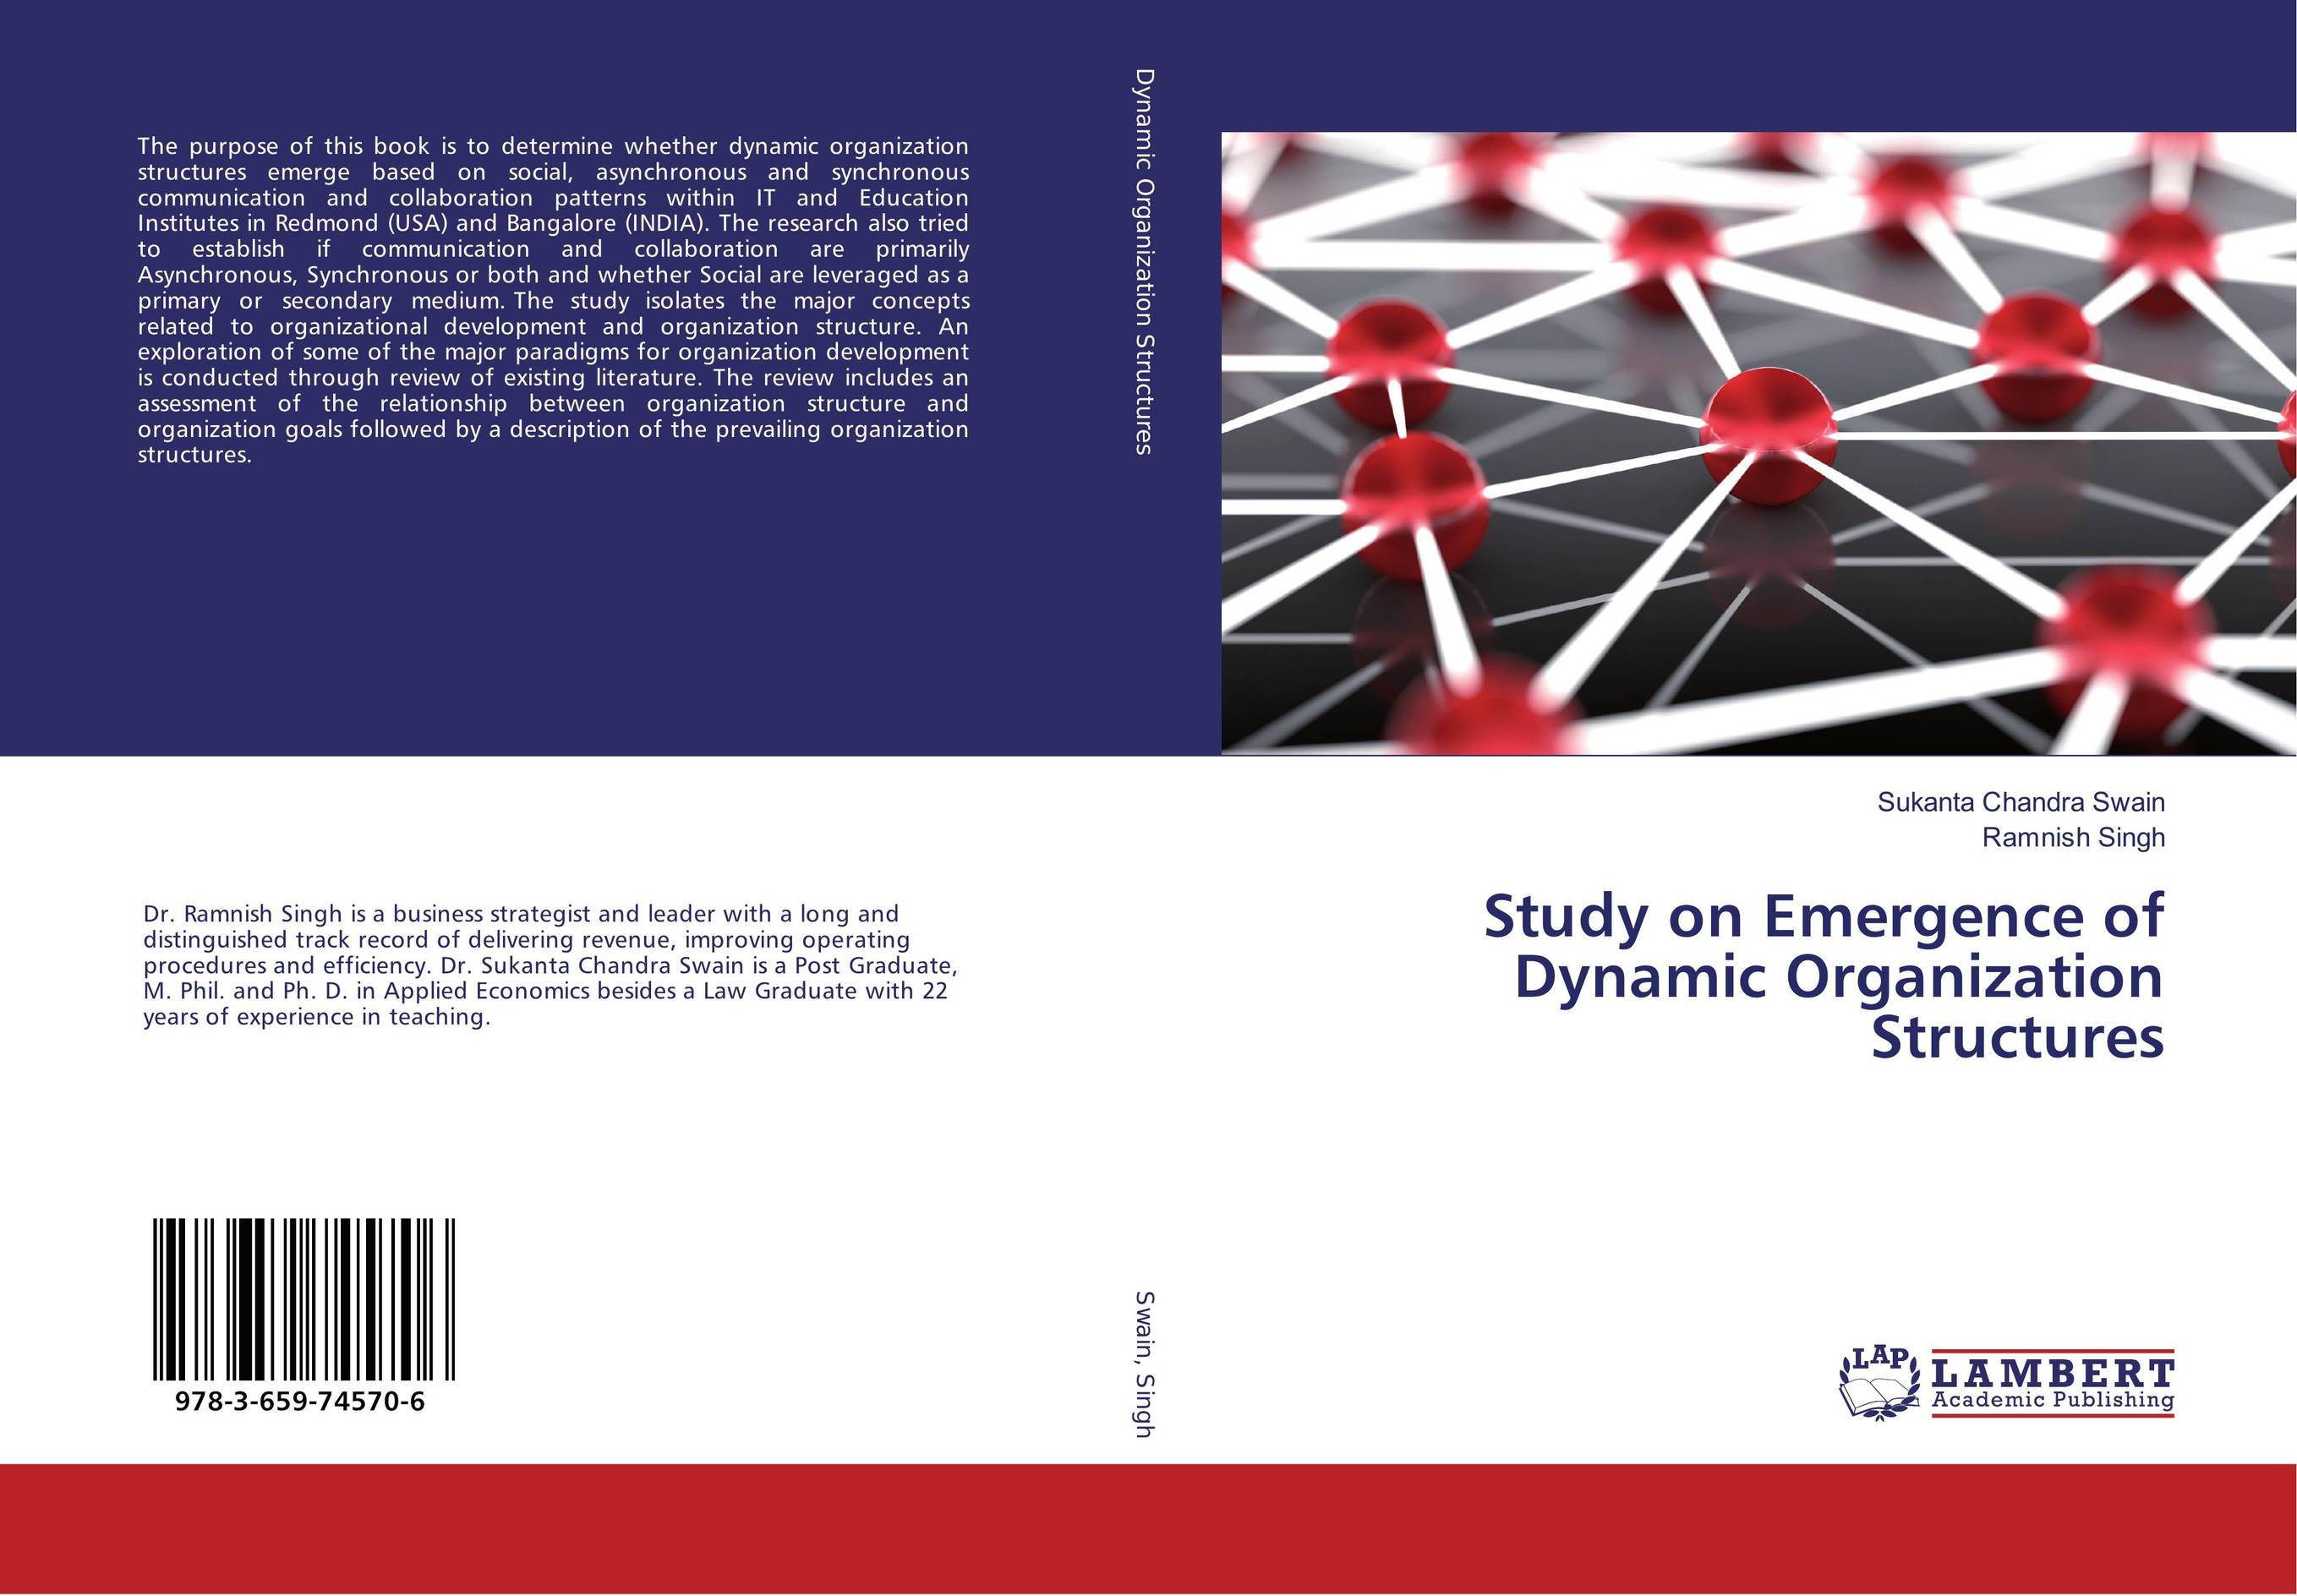 Study on Emergence of Dynamic Organization Structures silent spill – the organization of an industrial crisis